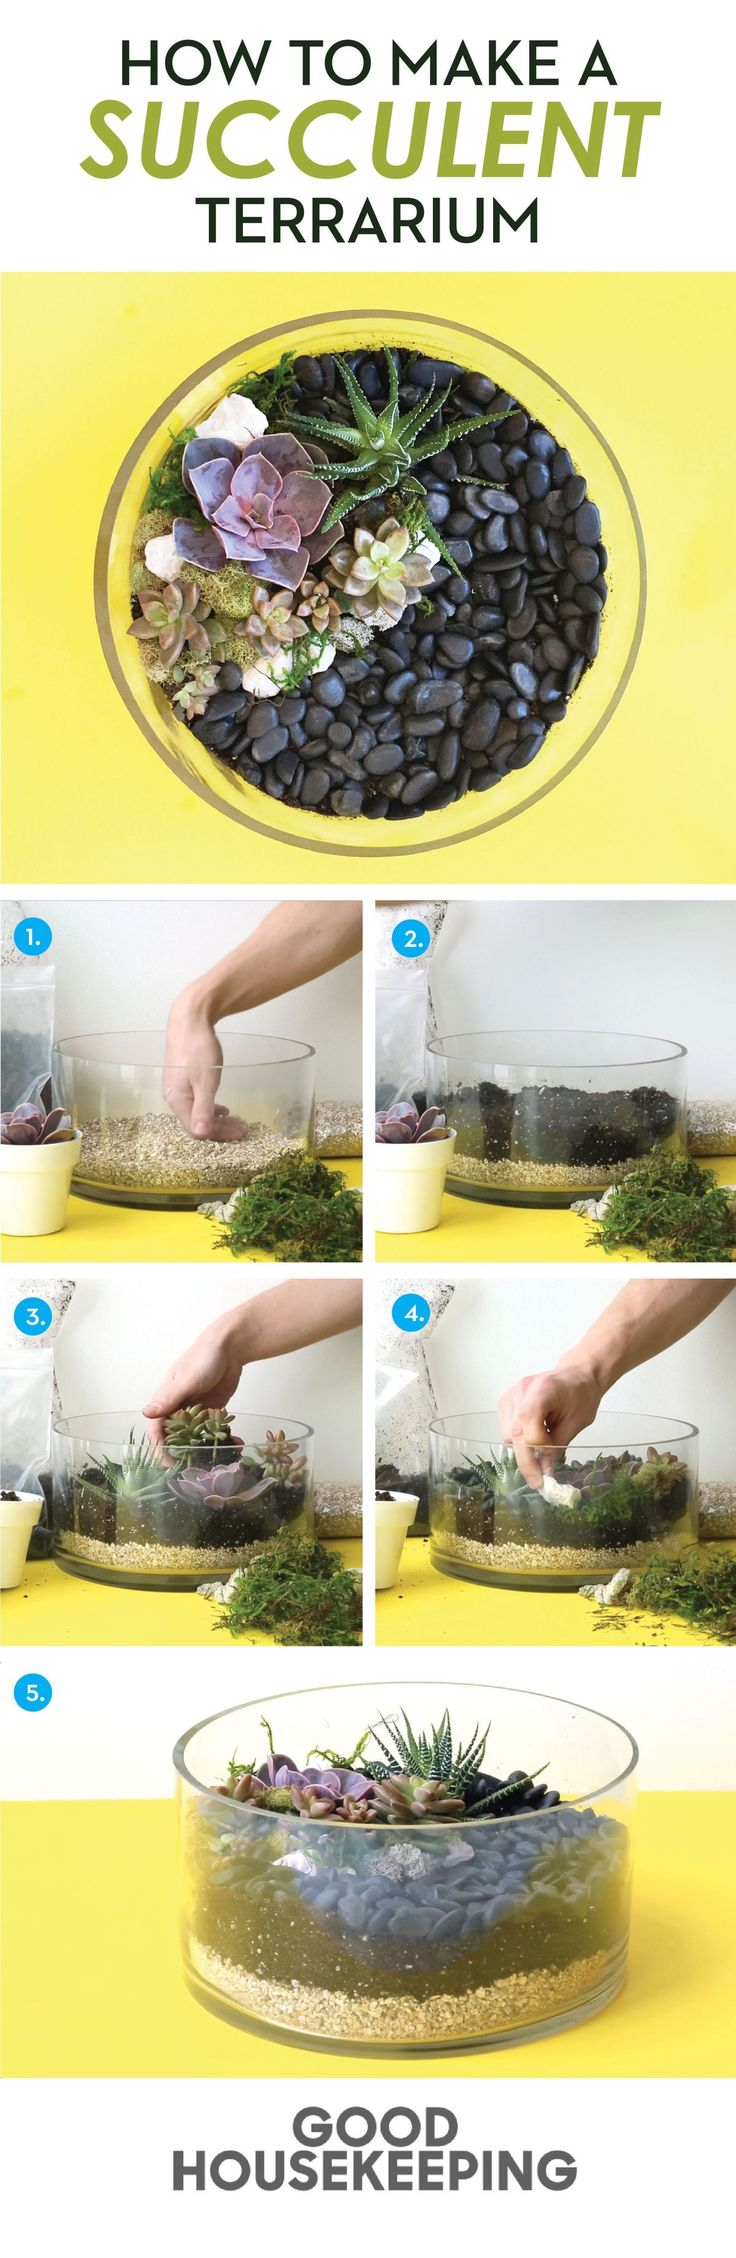 Make your own succulent garden by layering sand, soil, and stone.